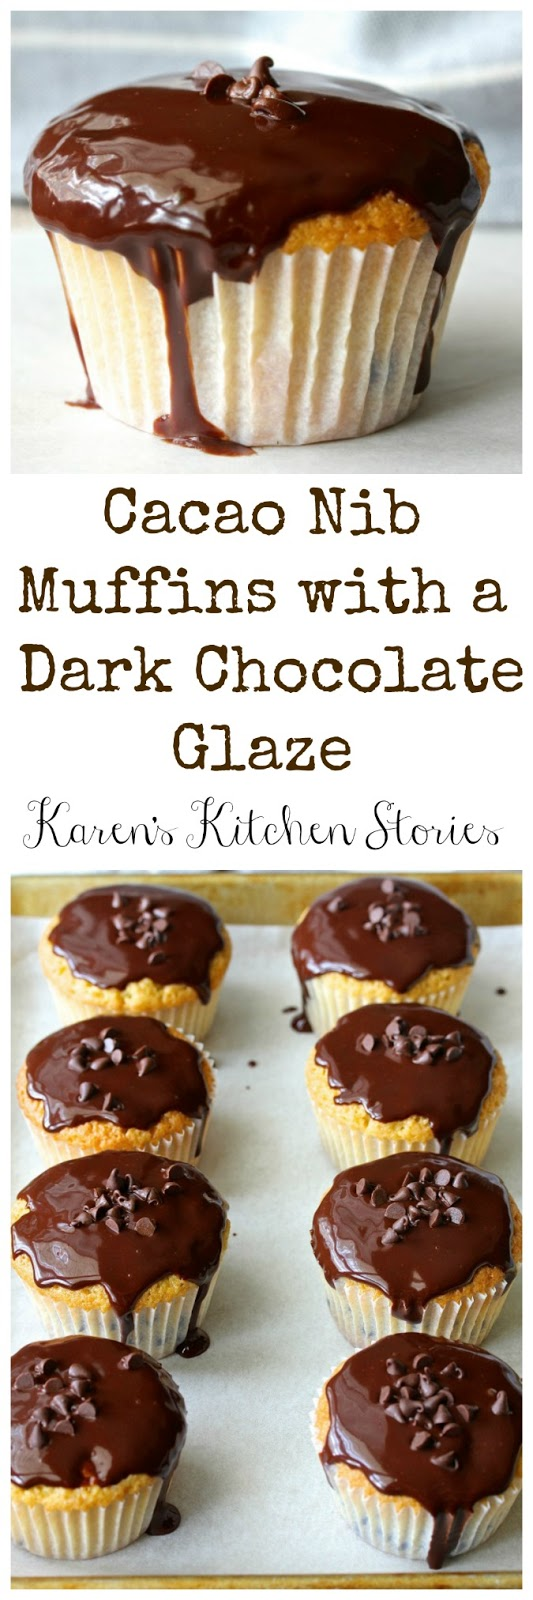 Cacao Nib Muffins with a Dark Chocolate Glaze from Karen's Kitchen Stories